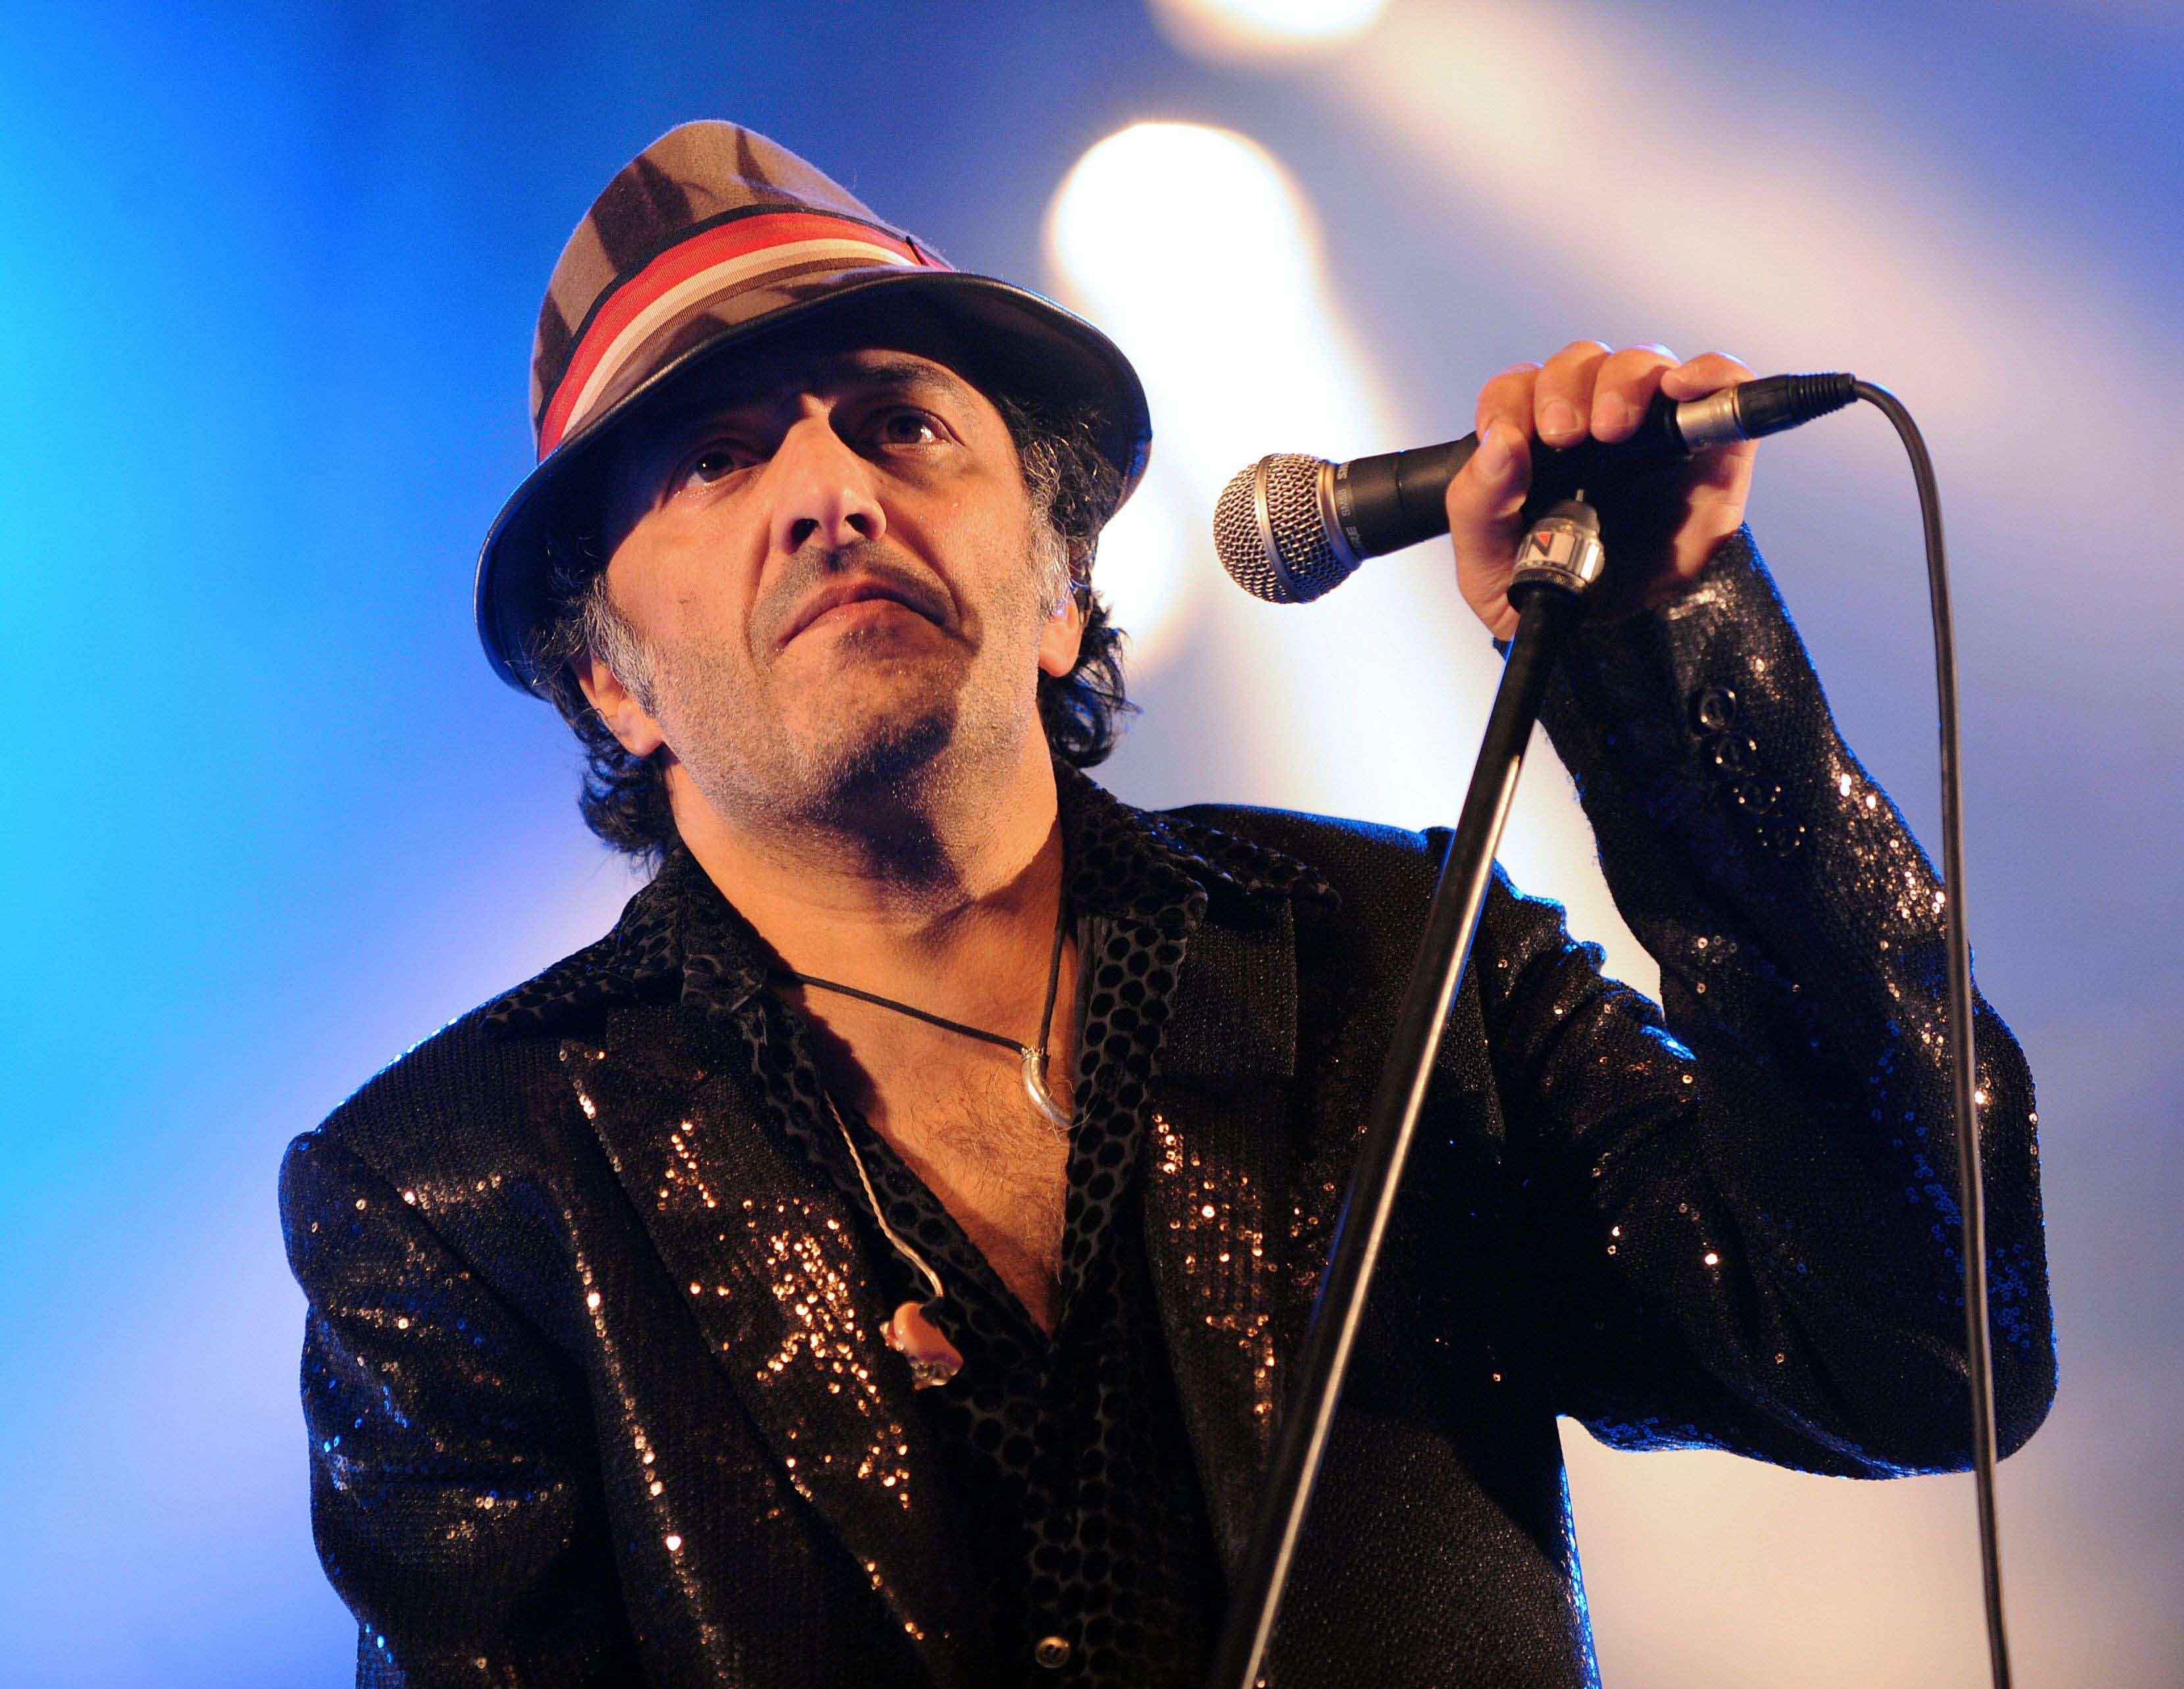 A file picture shows Algerian singer Rachid Taha performing in Toulouse for the 15th edition of the Rio Loco festival. (AFP)